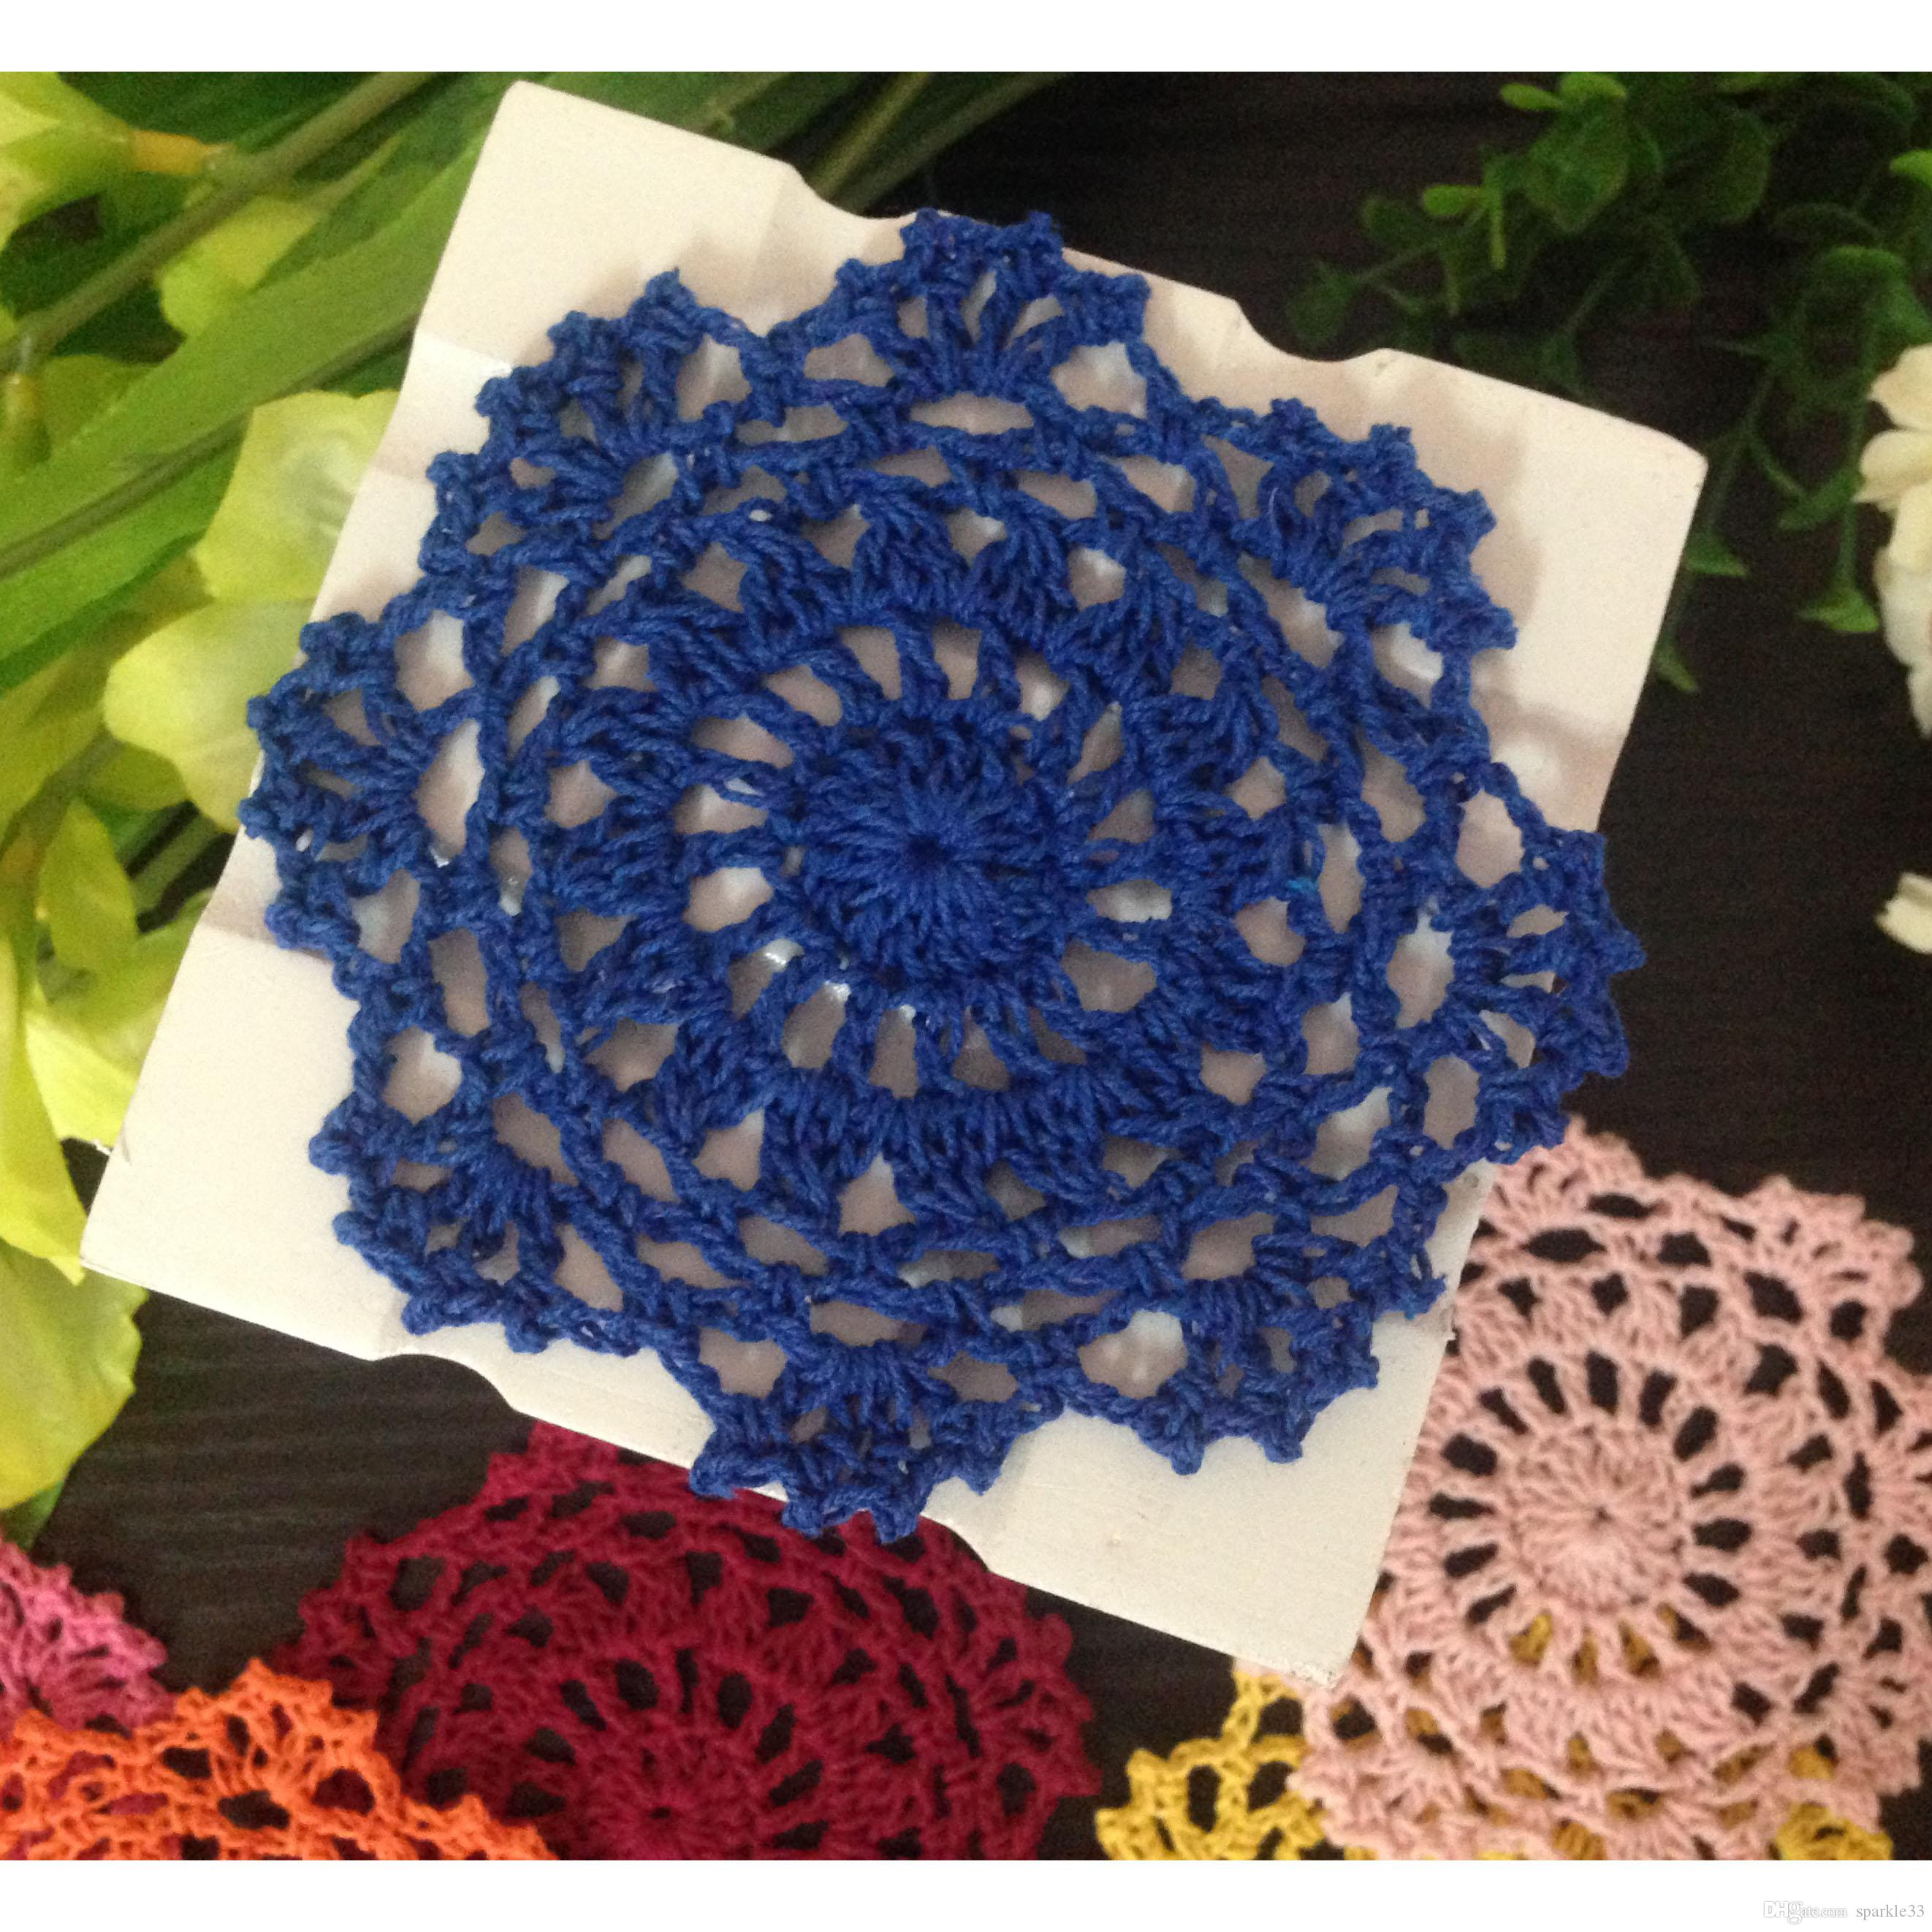 DIY Wholesale Household Handmade Flower Crochet Doilies Round Cup Mat Pad 10cm Coaster Placemats For Wedding Gift